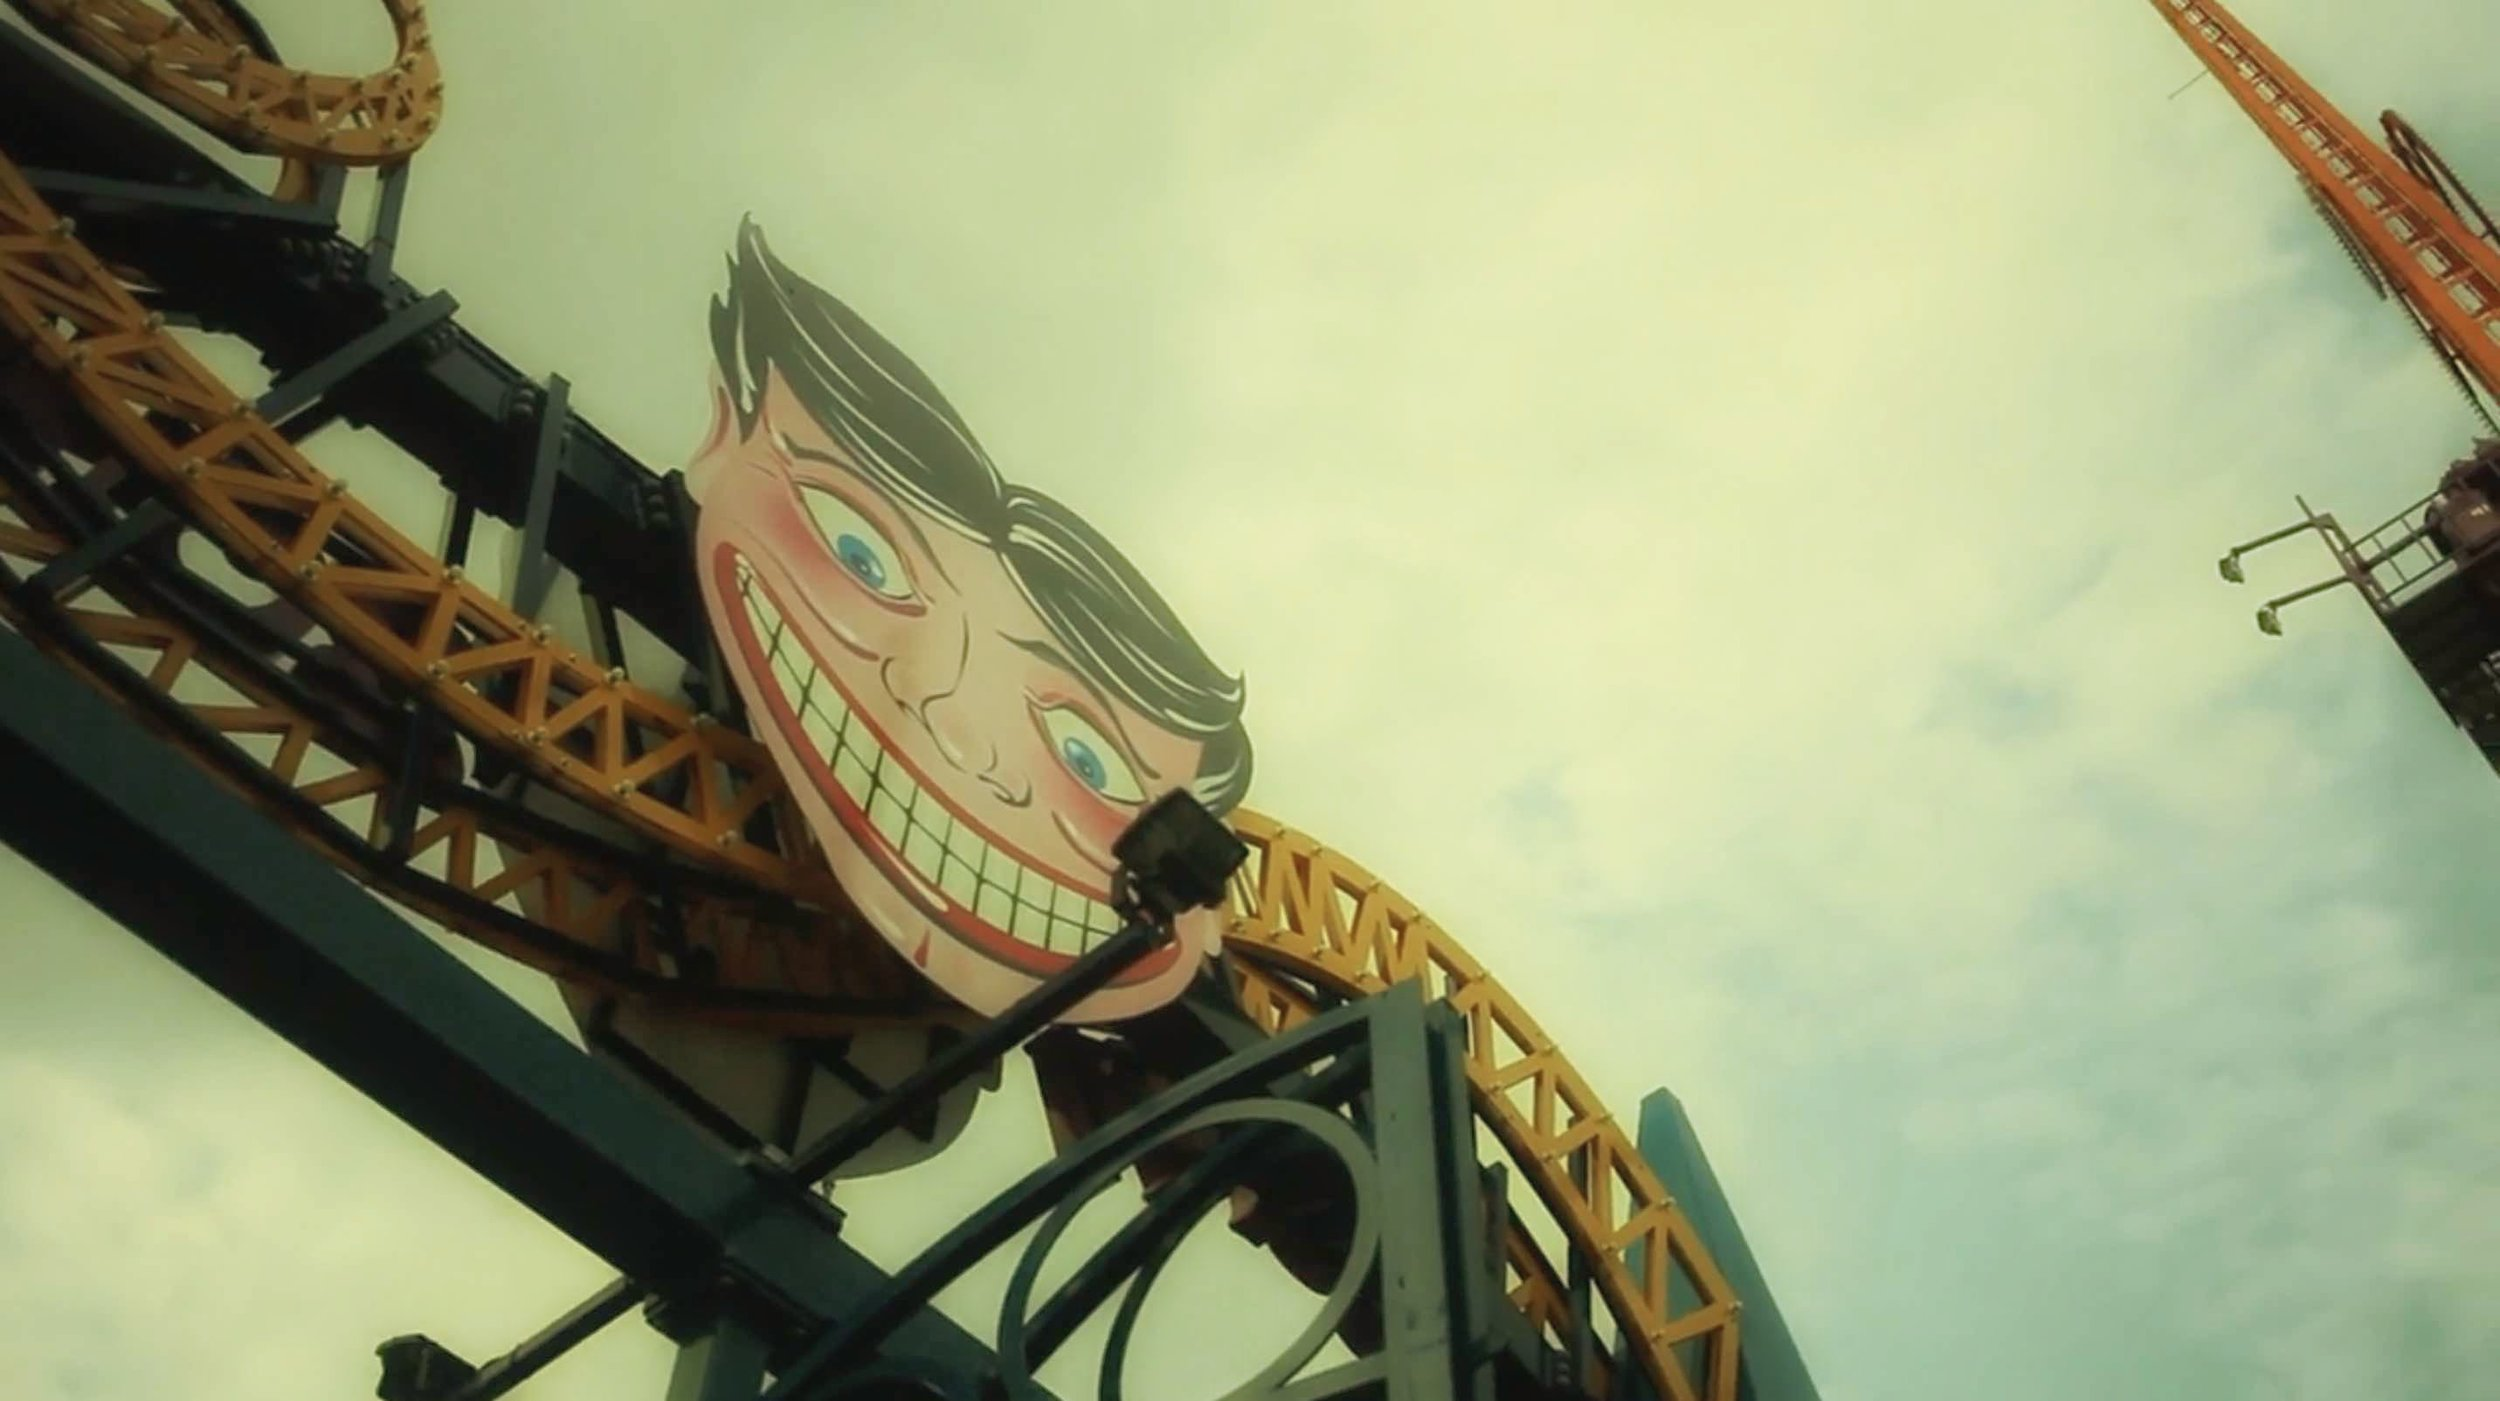 amuse yourself at the luna park in coney island